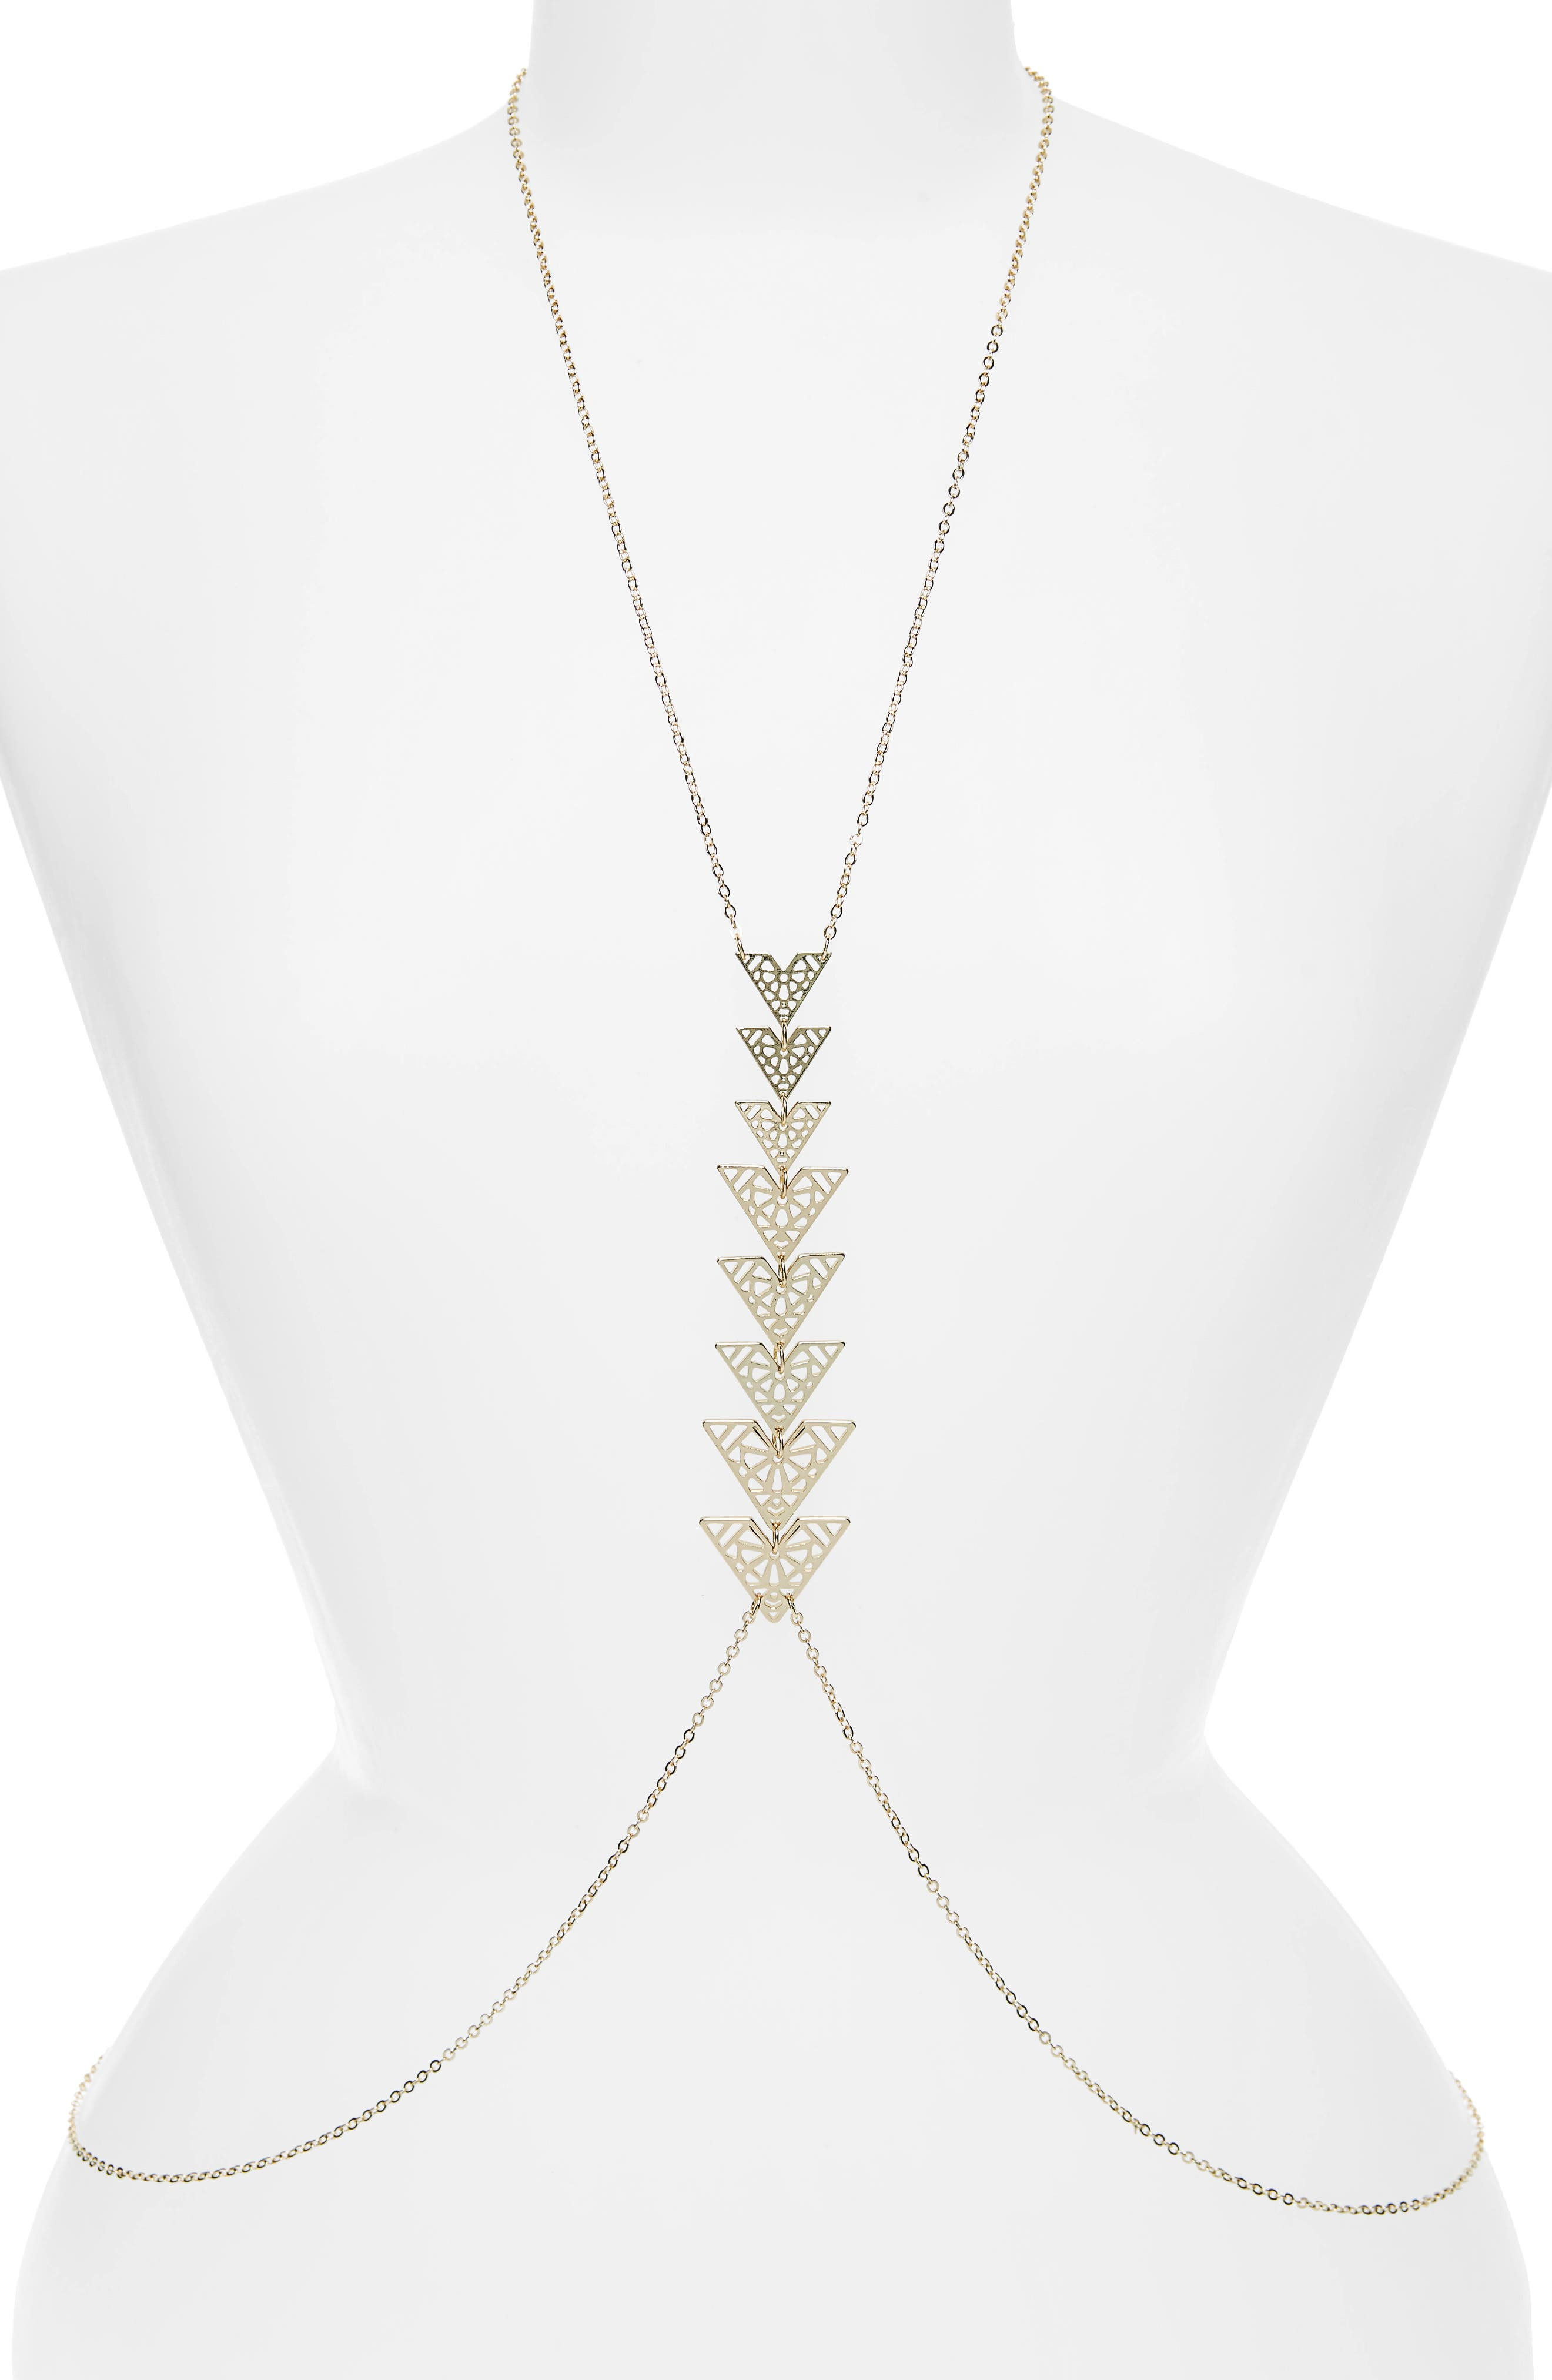 Triangle Body Chain,                             Main thumbnail 1, color,                             710